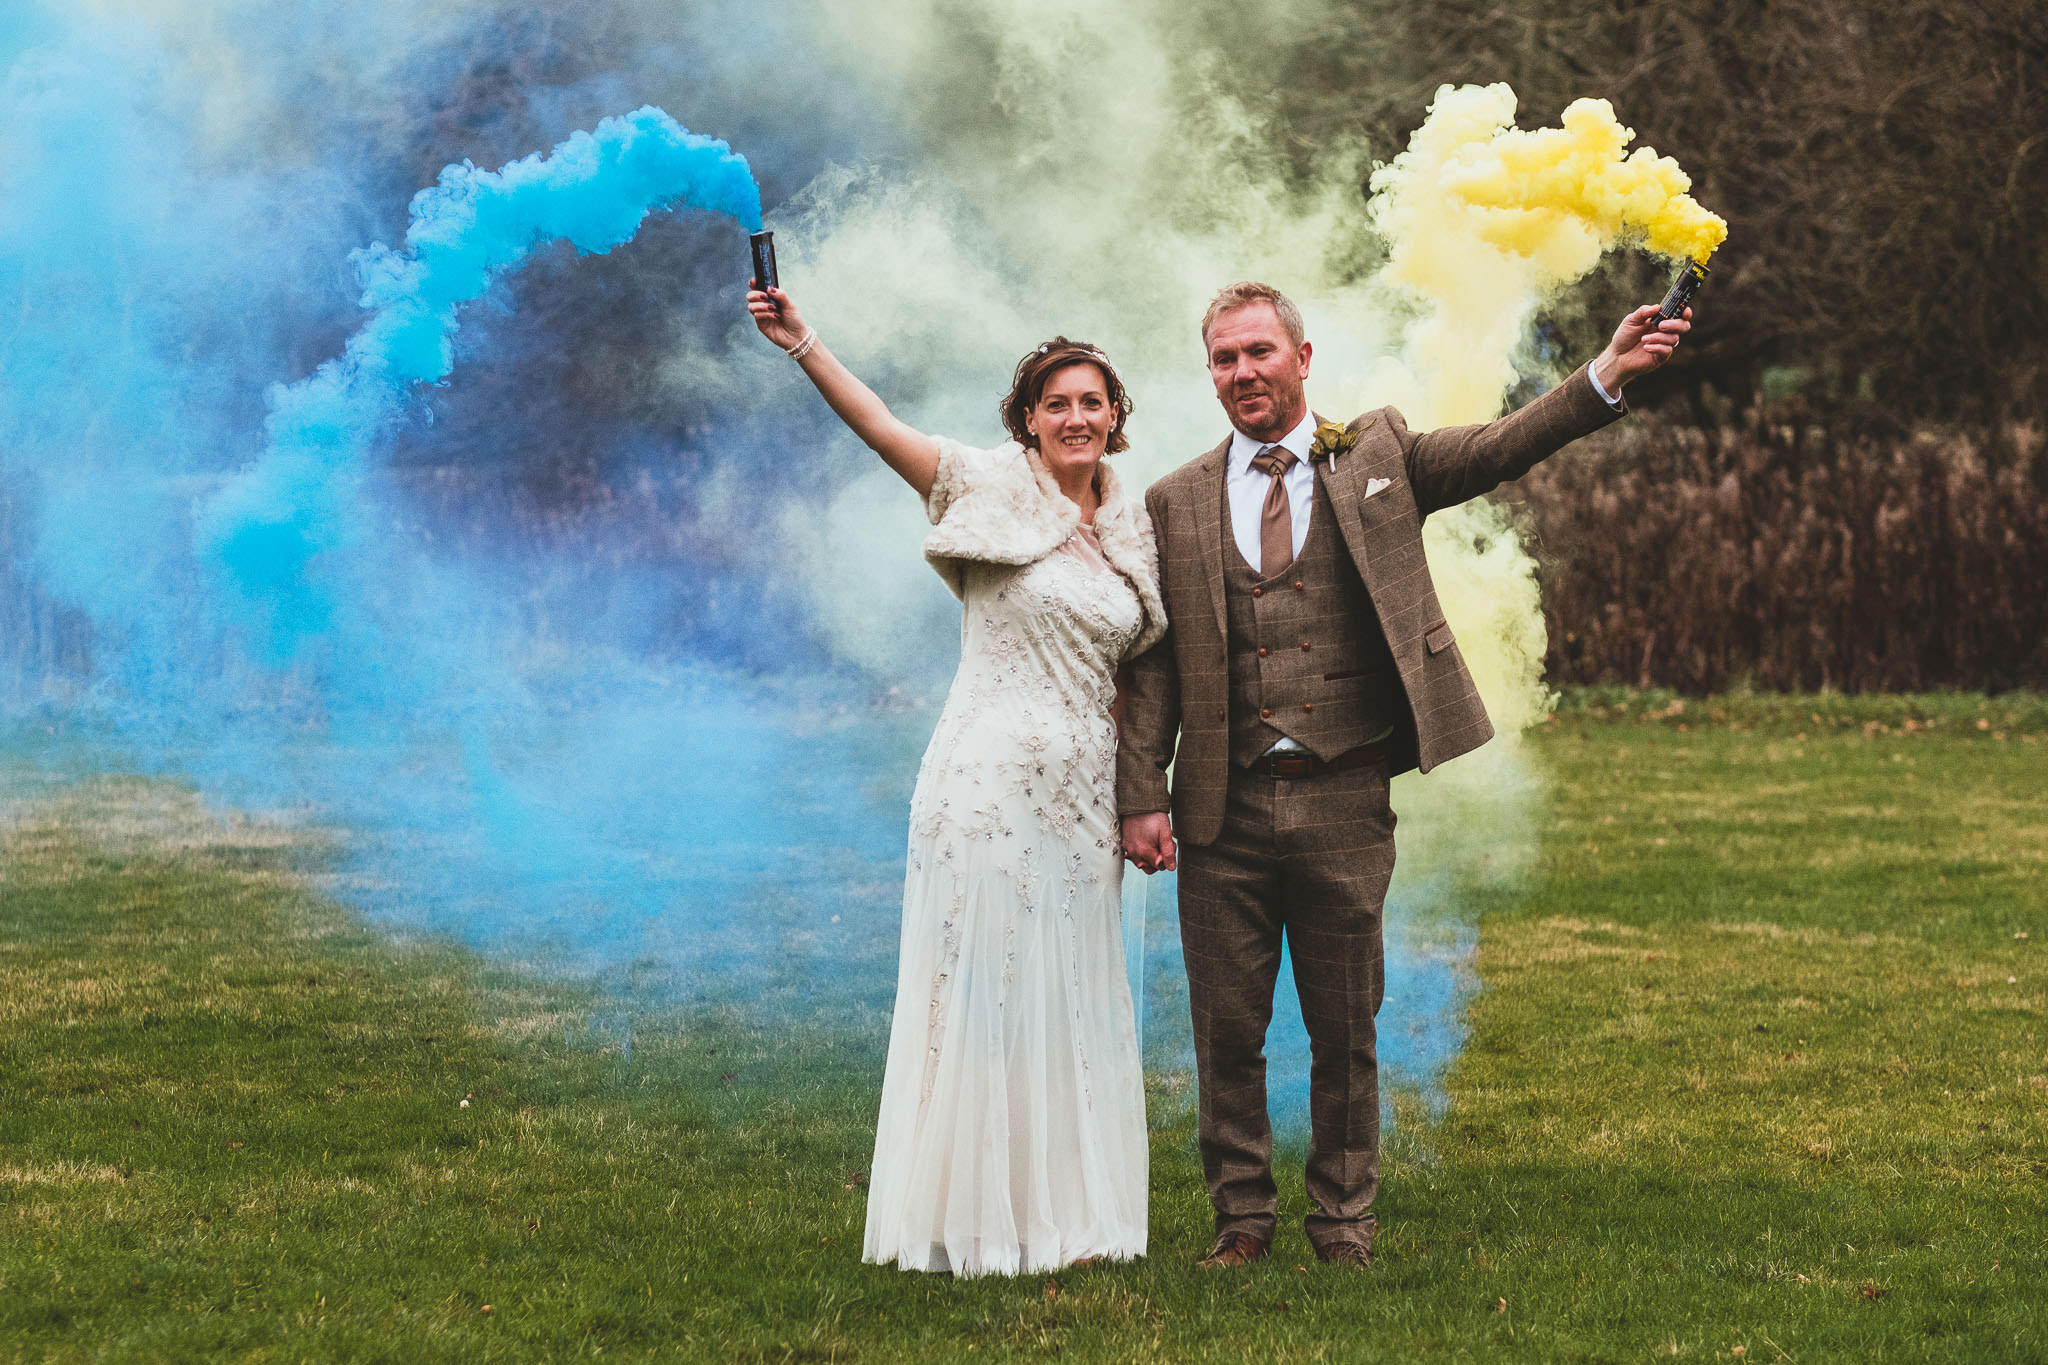 Angela and Dave got some colour into their winter wedding at The Parlour at Blagdon in Newcastle with smoke bombs!